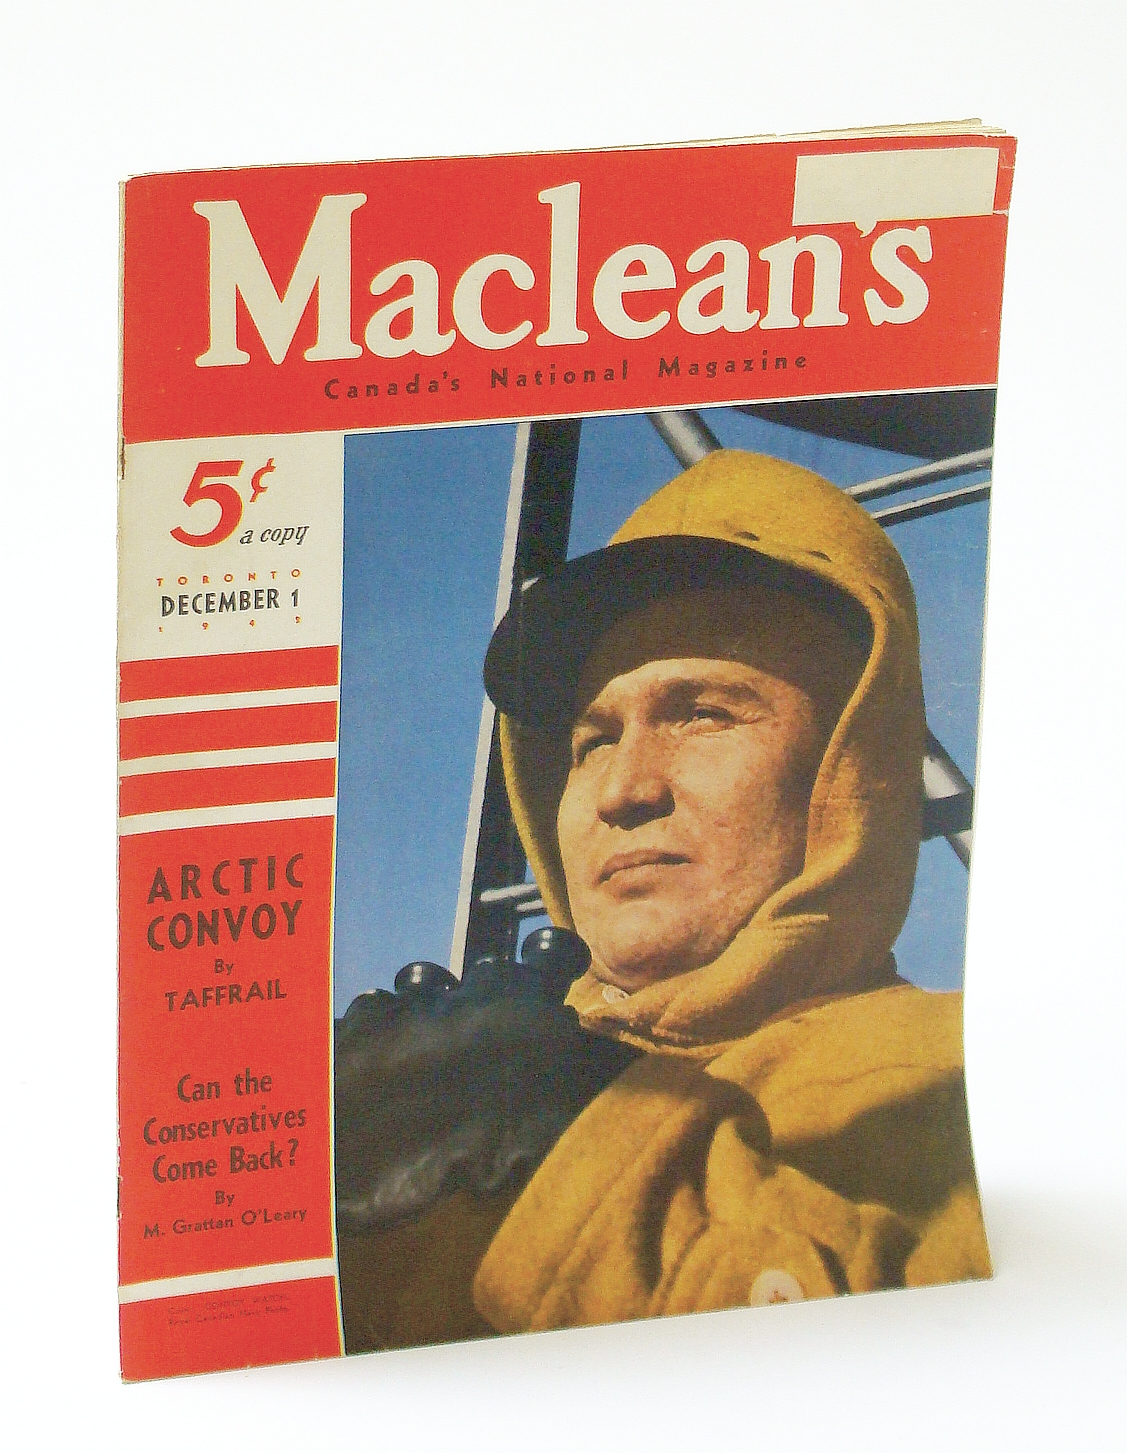 Image for Maclean's, Canada's National Magazine, December (Dec.) 1 1942, Vol. 55, No. 23 - Arctic Convoy / Elissa Landi of Vancouver